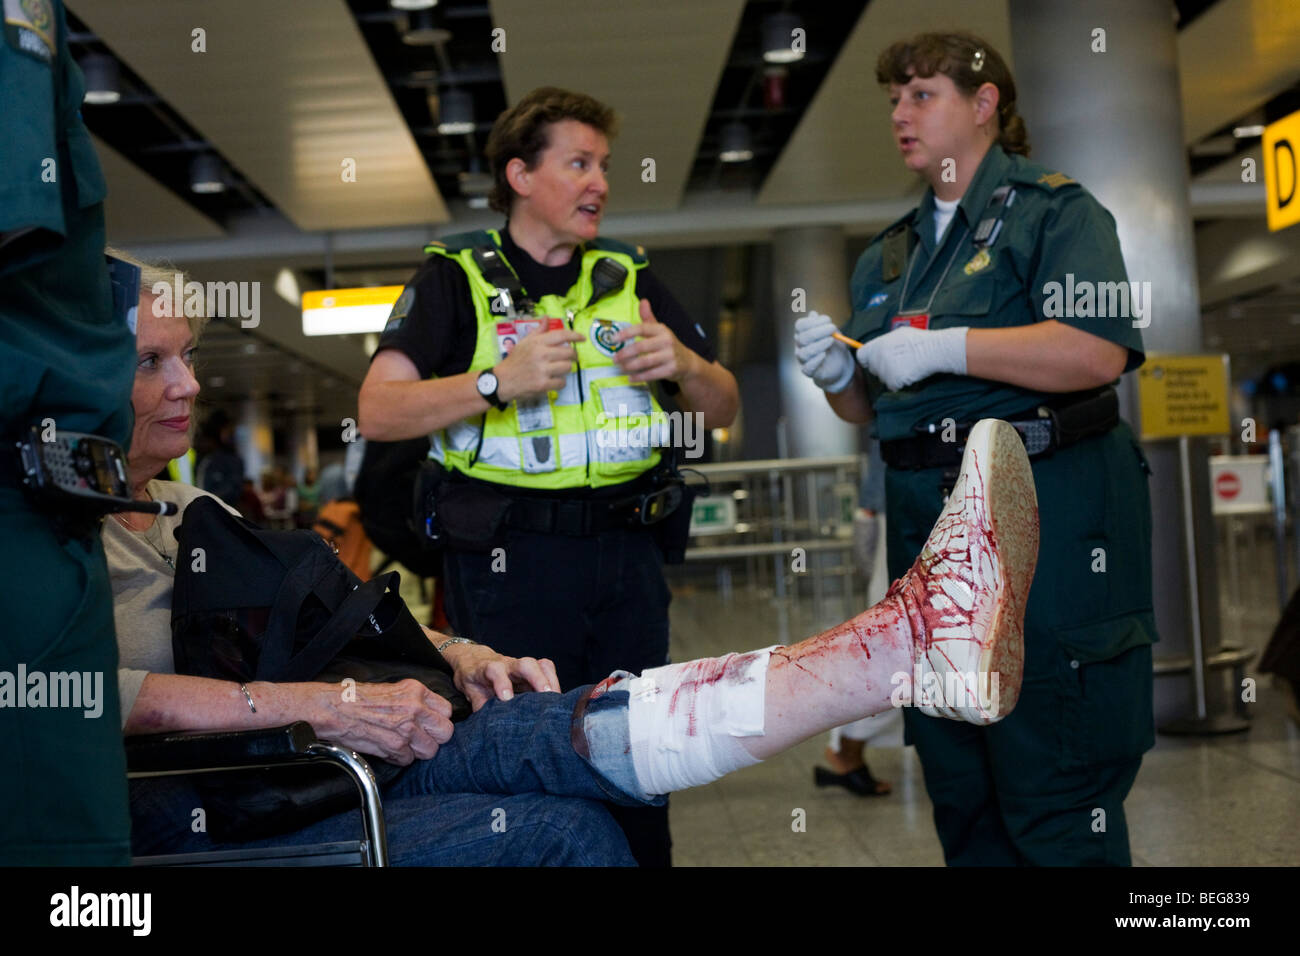 NHS Paramedic Responders attends a lady passenger in Heathrow's terminal 3 who has tripped and badly gashed - Stock Image